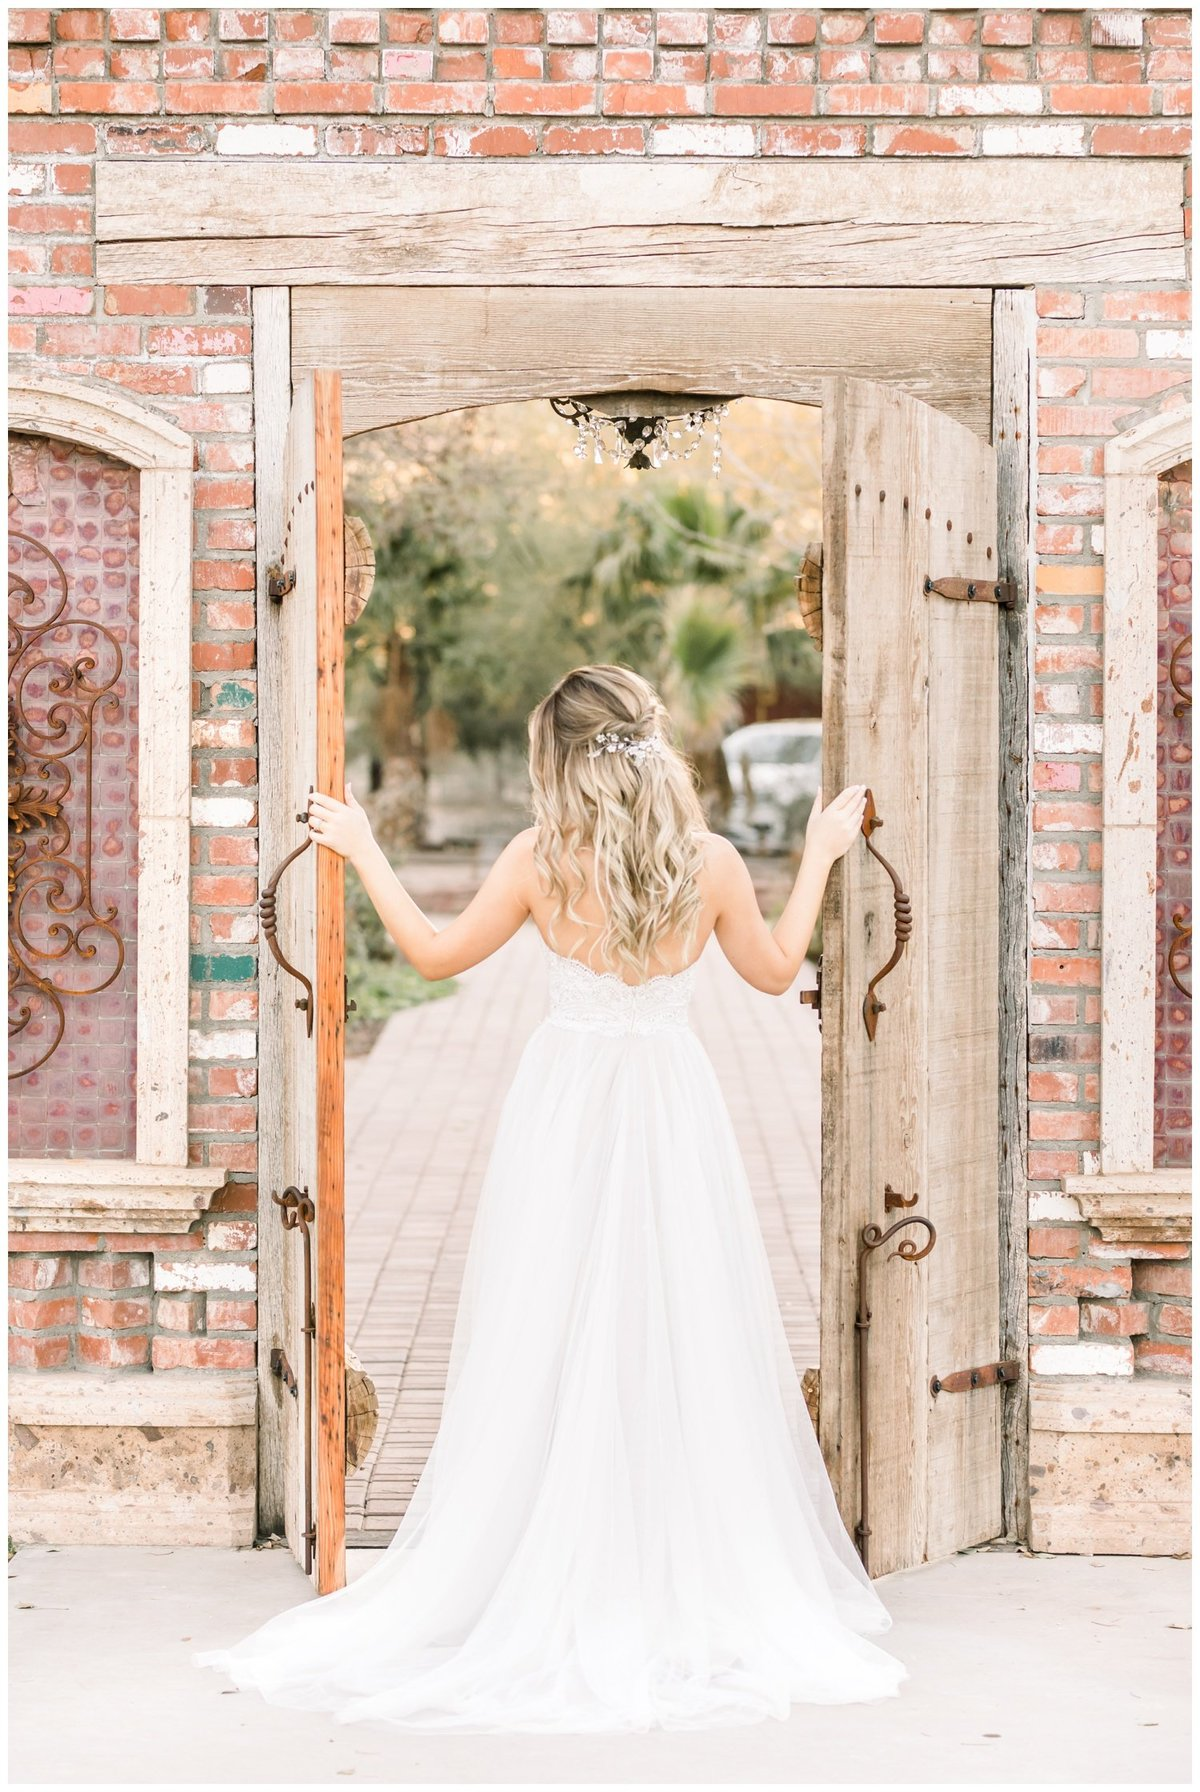 El Chorro Wedding Photographer, Arizona Wedding Photographer, Phoenix Wedding Photographer_0069